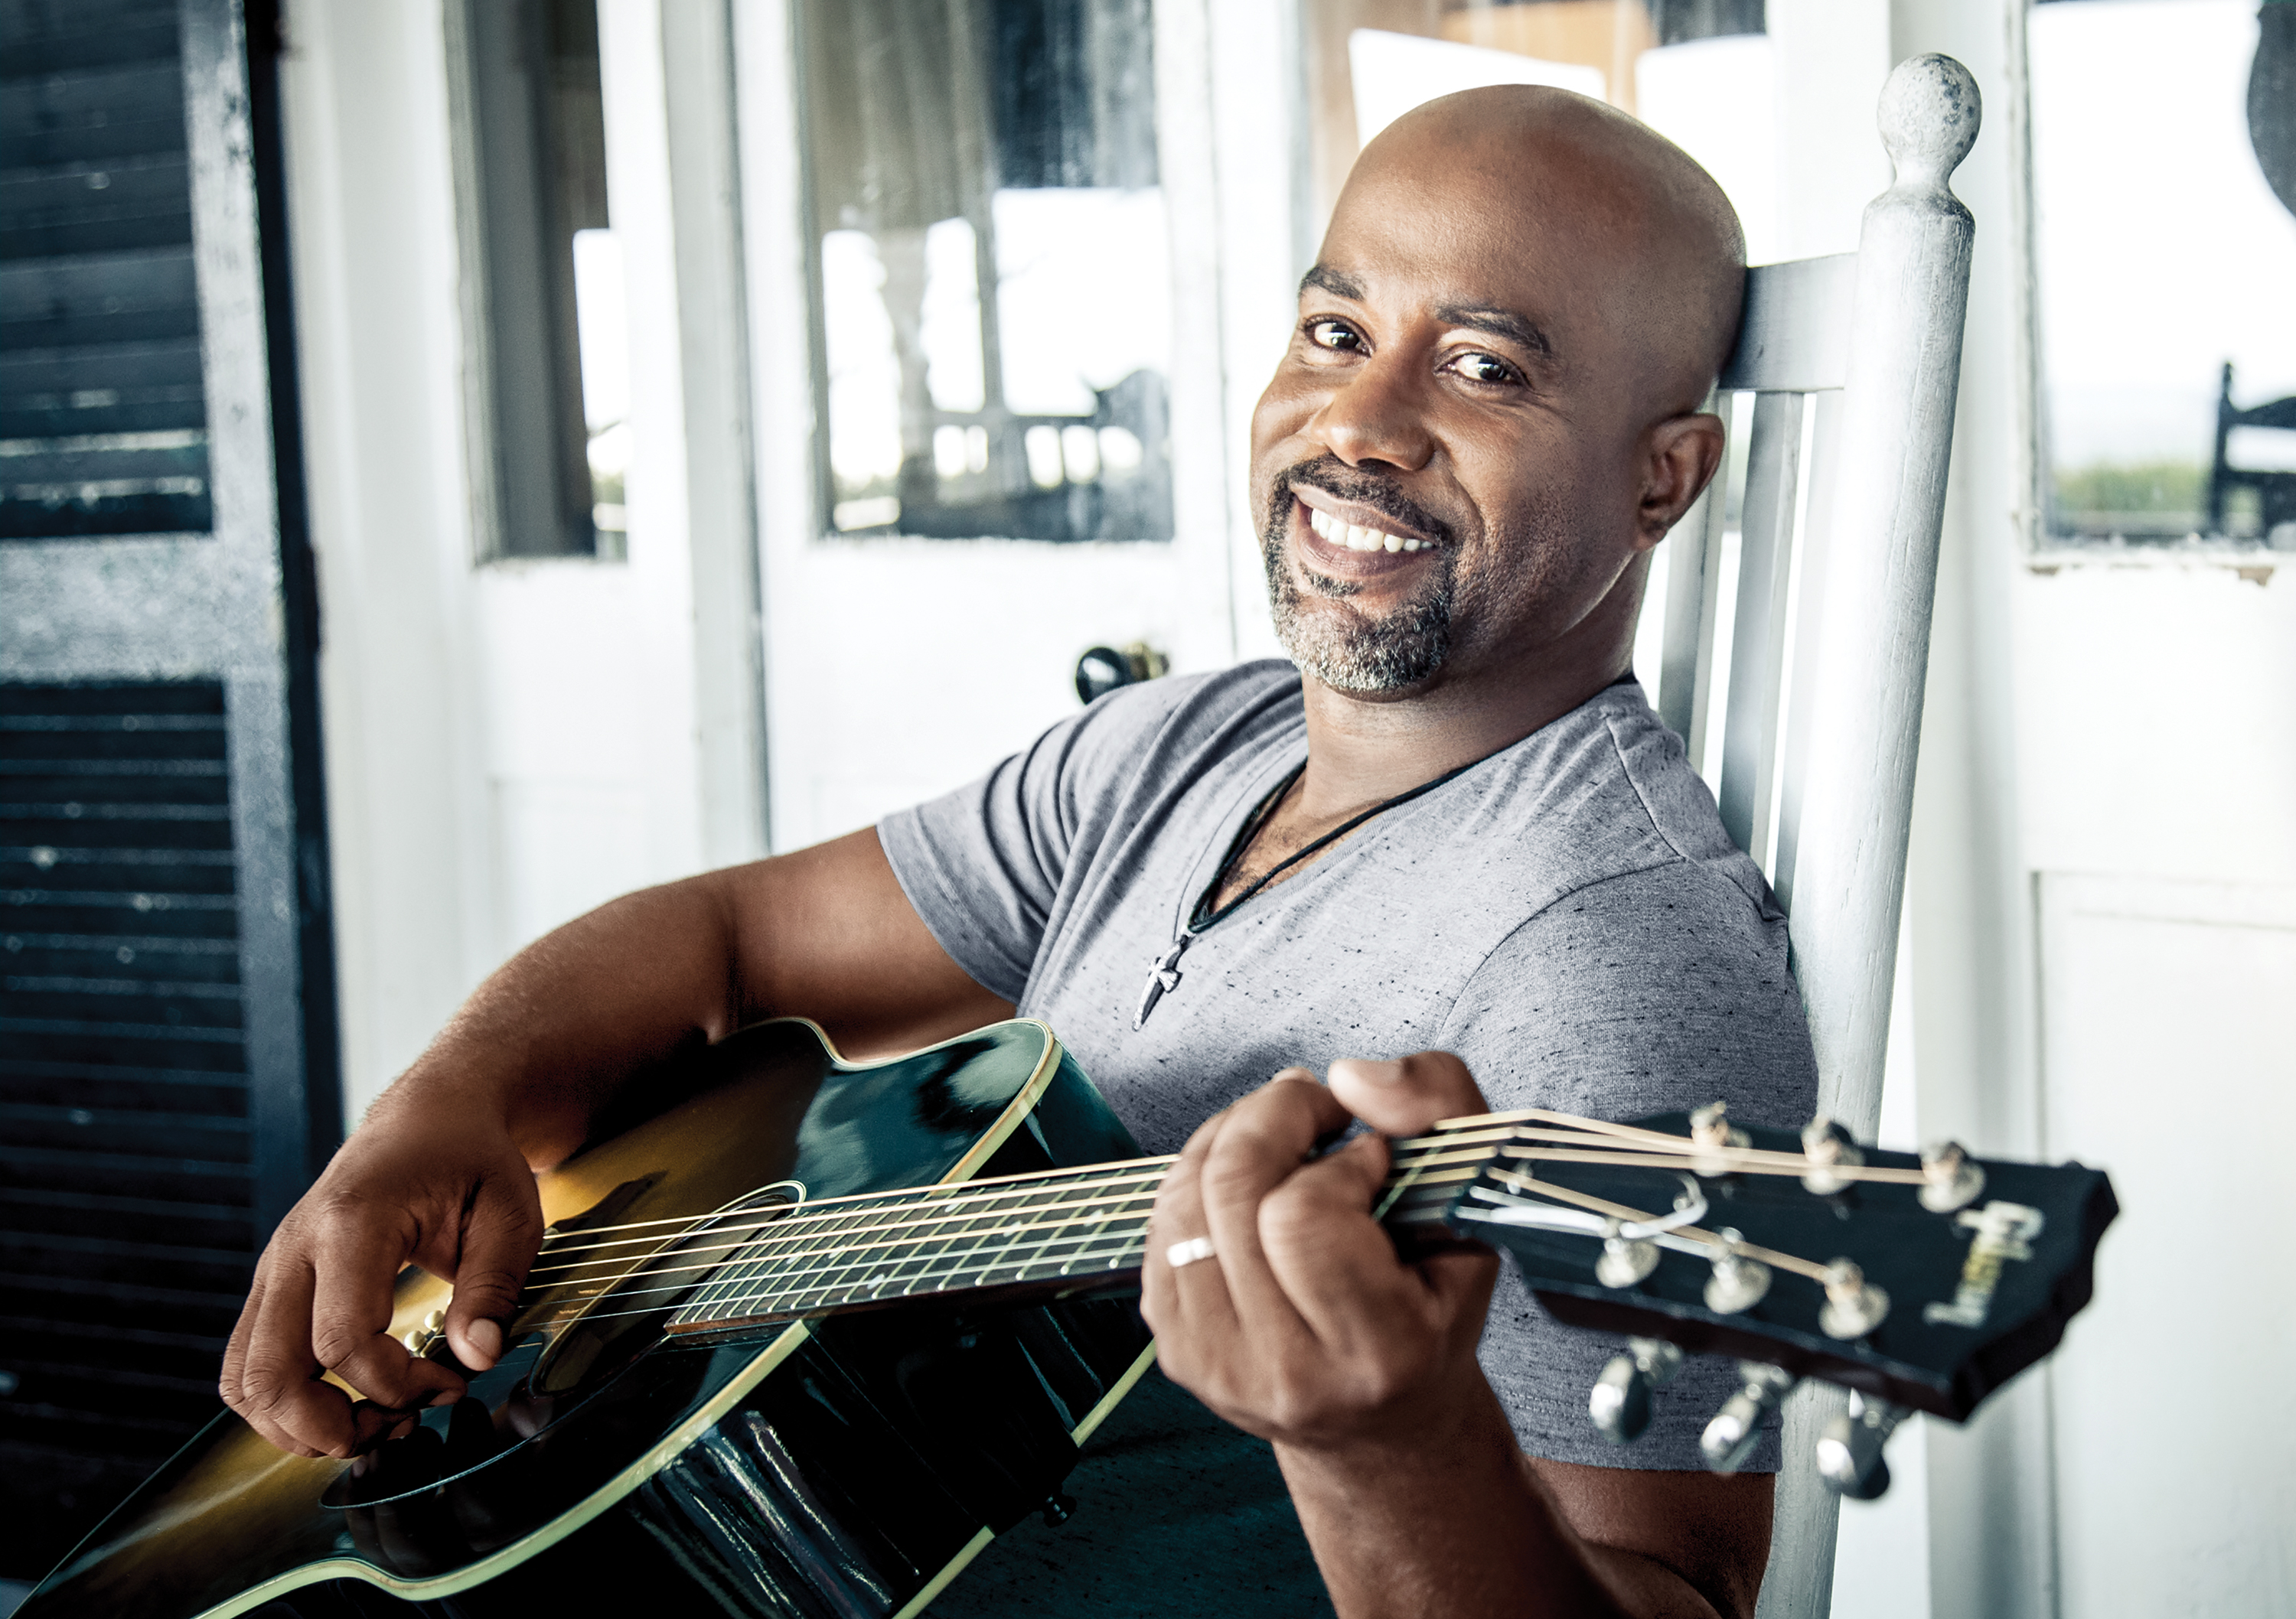 Darius Rucker Steals The Show At C2c Festival Building Our Own